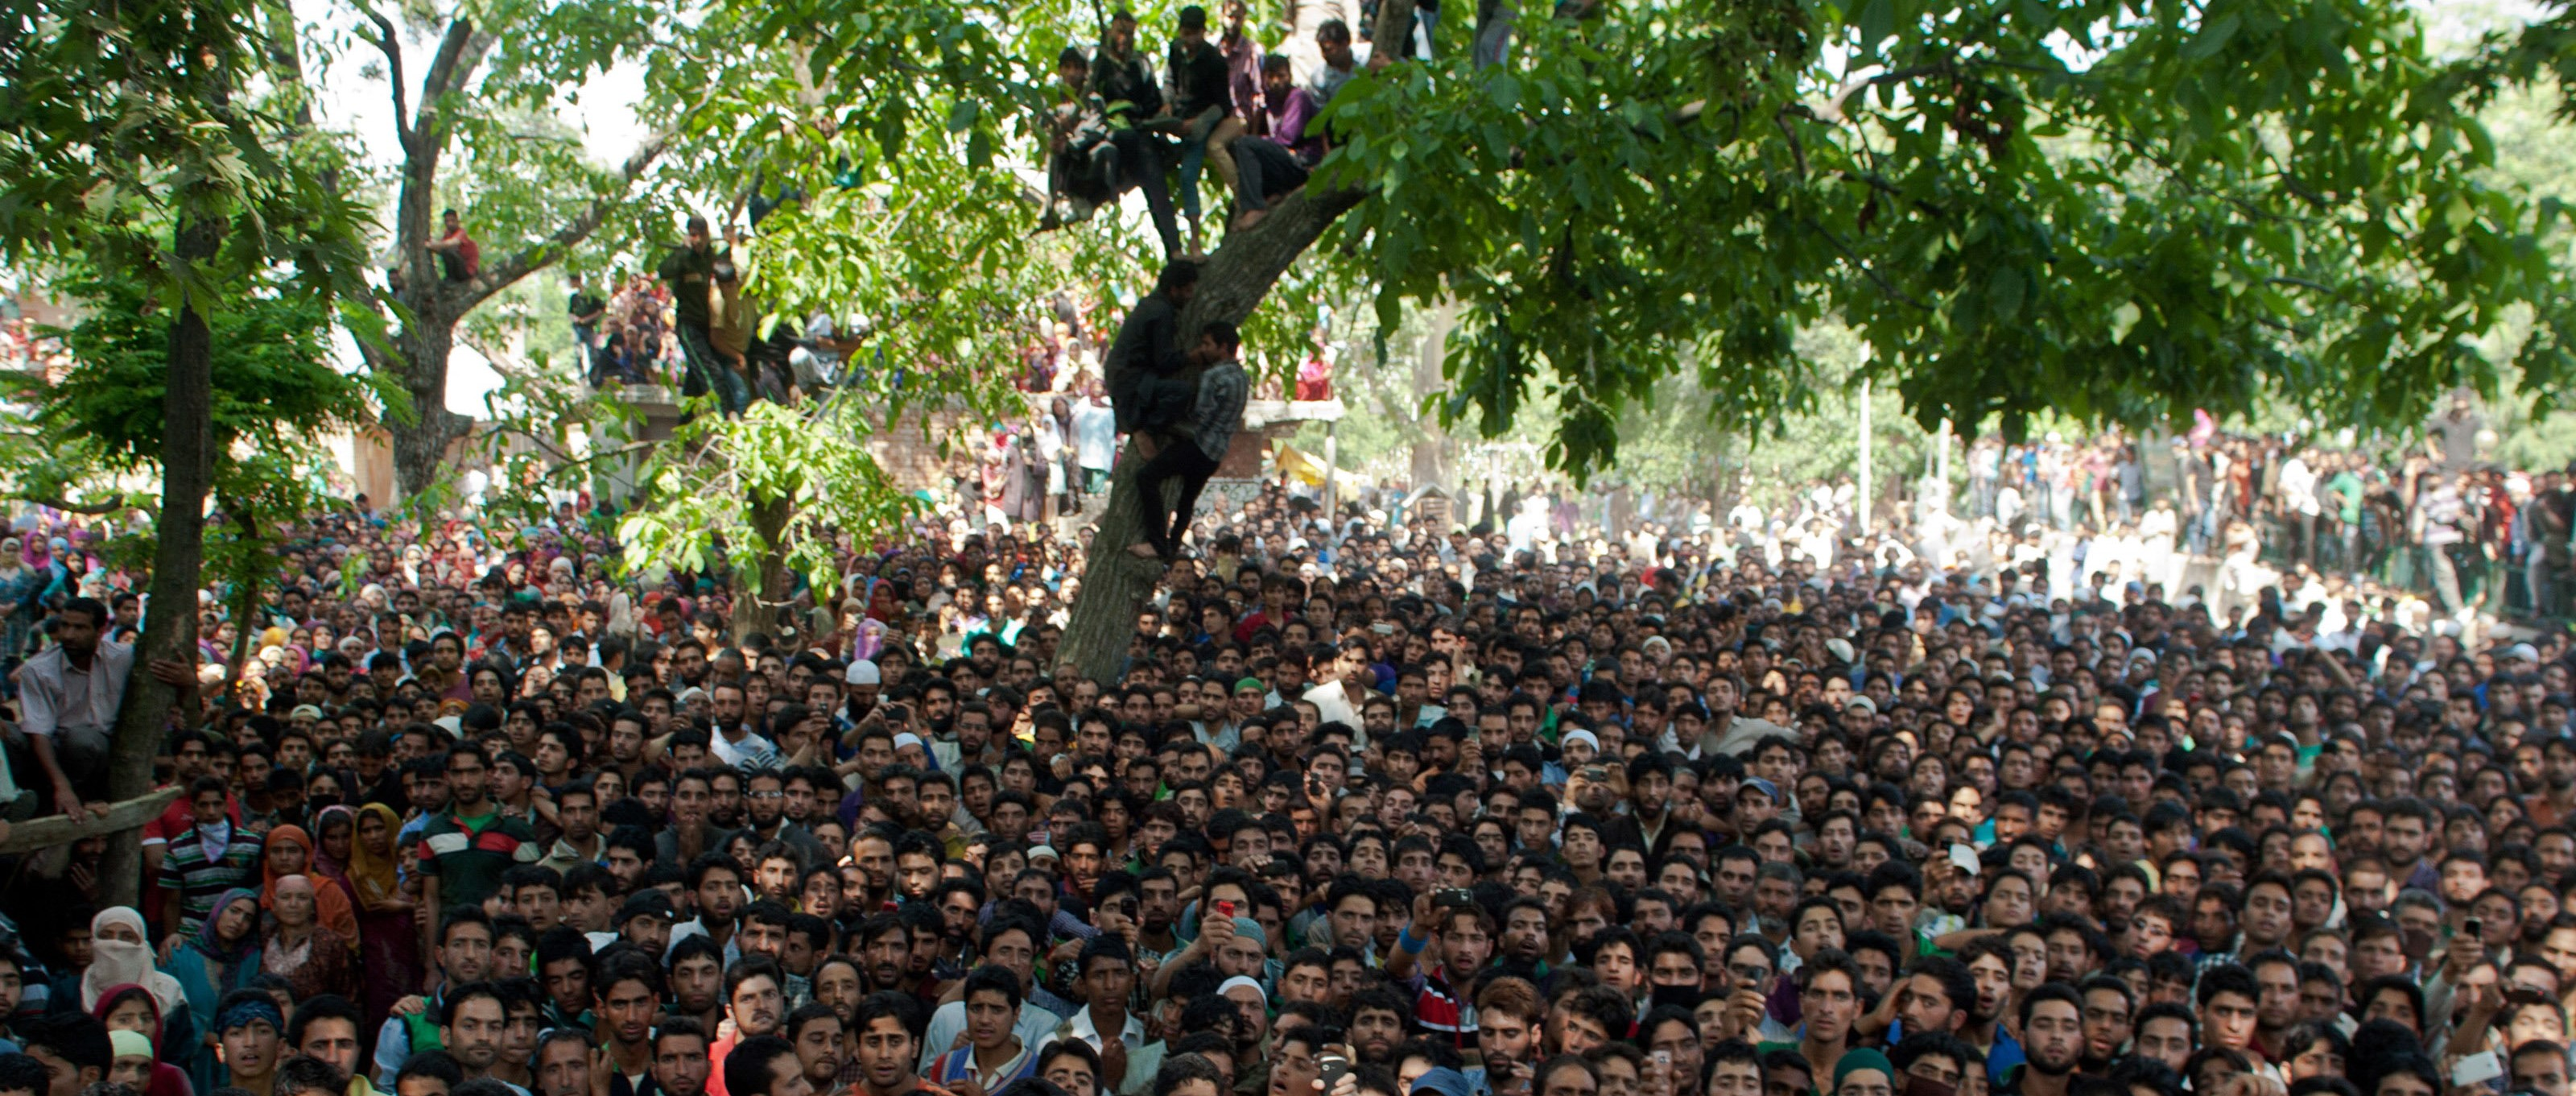 The crowd at a Jaish-e-Mohammad funeral in Kashmir in 2006 (Photo: Yawar Nazir/Getty Images)